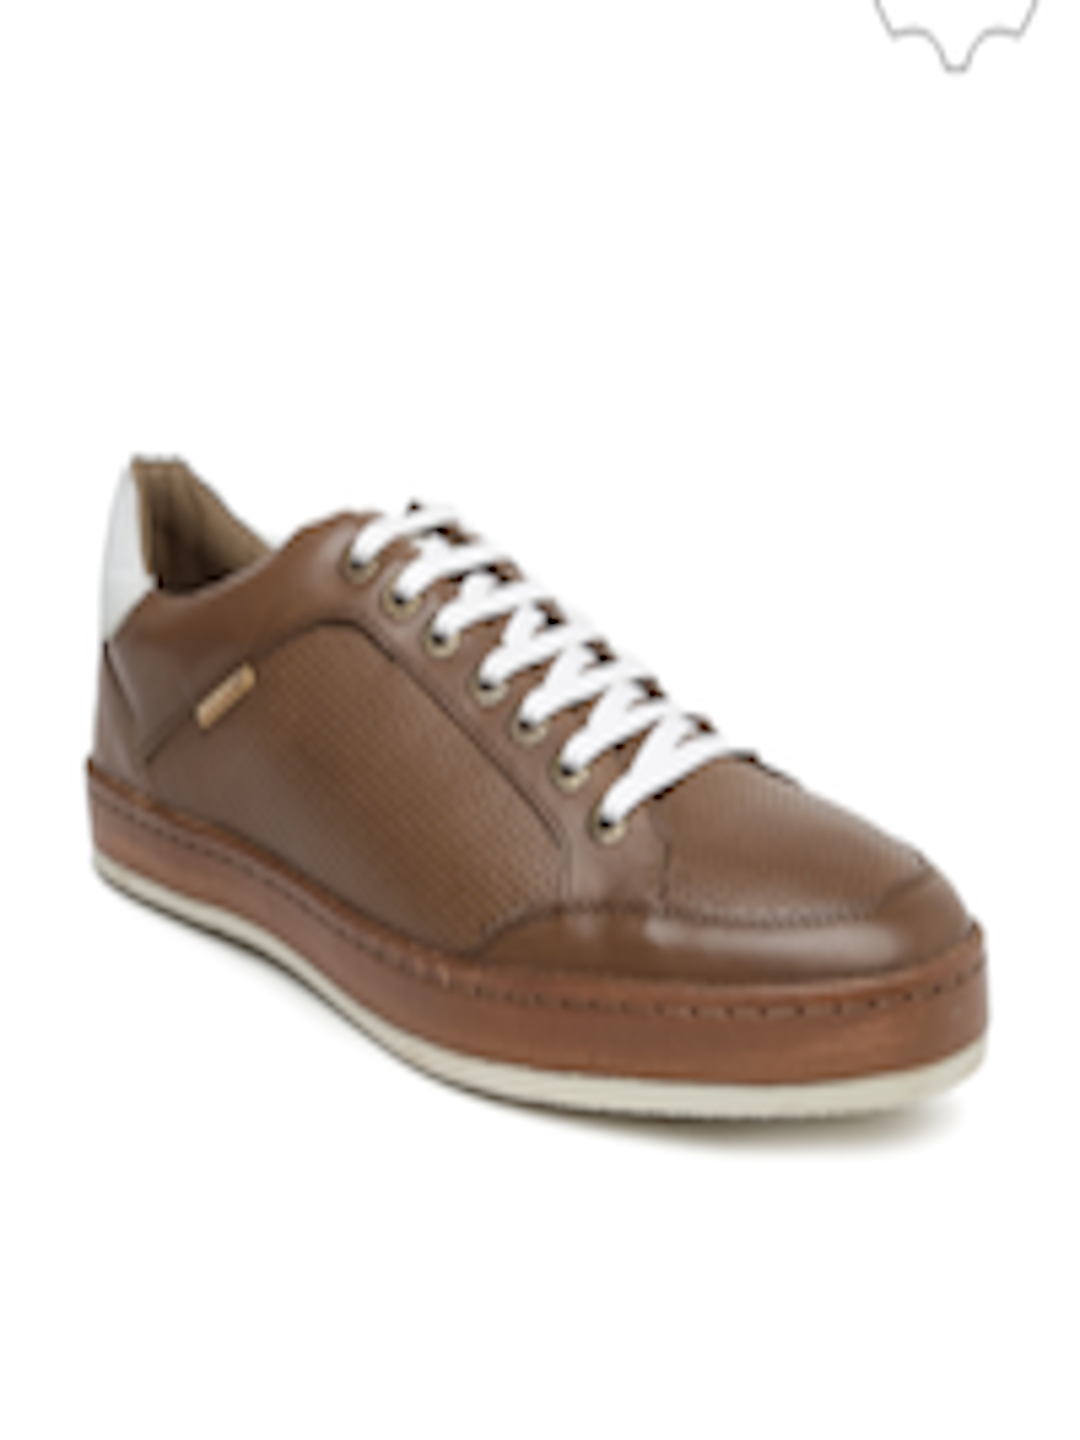 buy u s polo assn brown genuine leather casual shoes